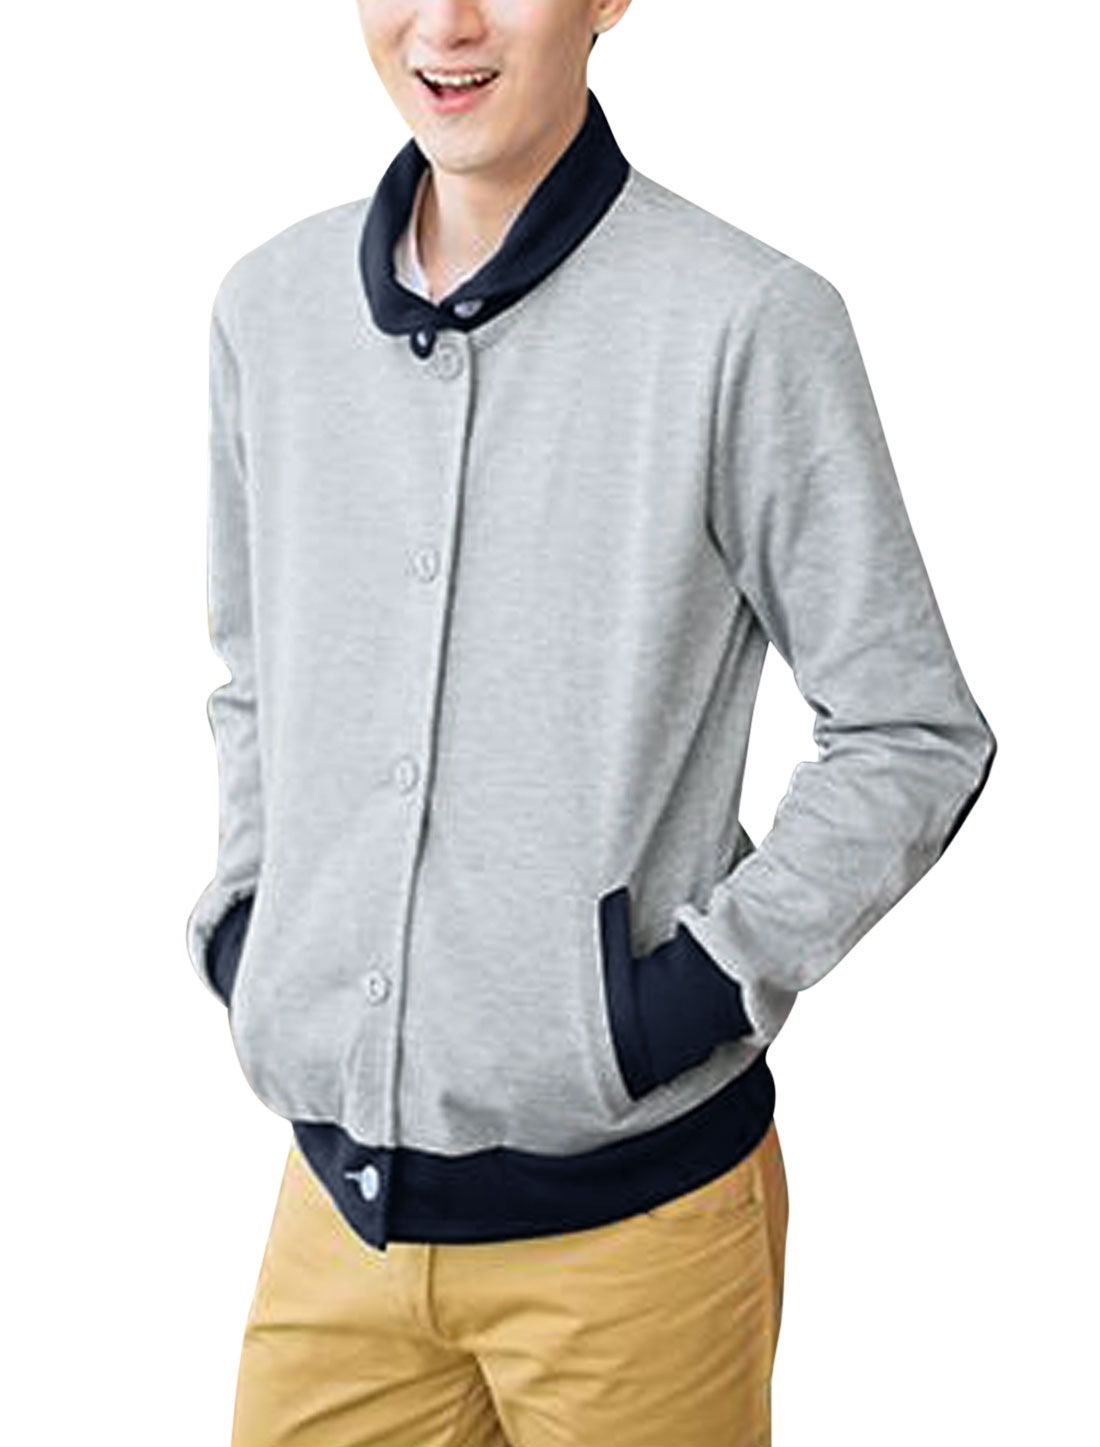 Men Two Pockets Elbow Patches Contrast Color Casual Jacket Light Gray M